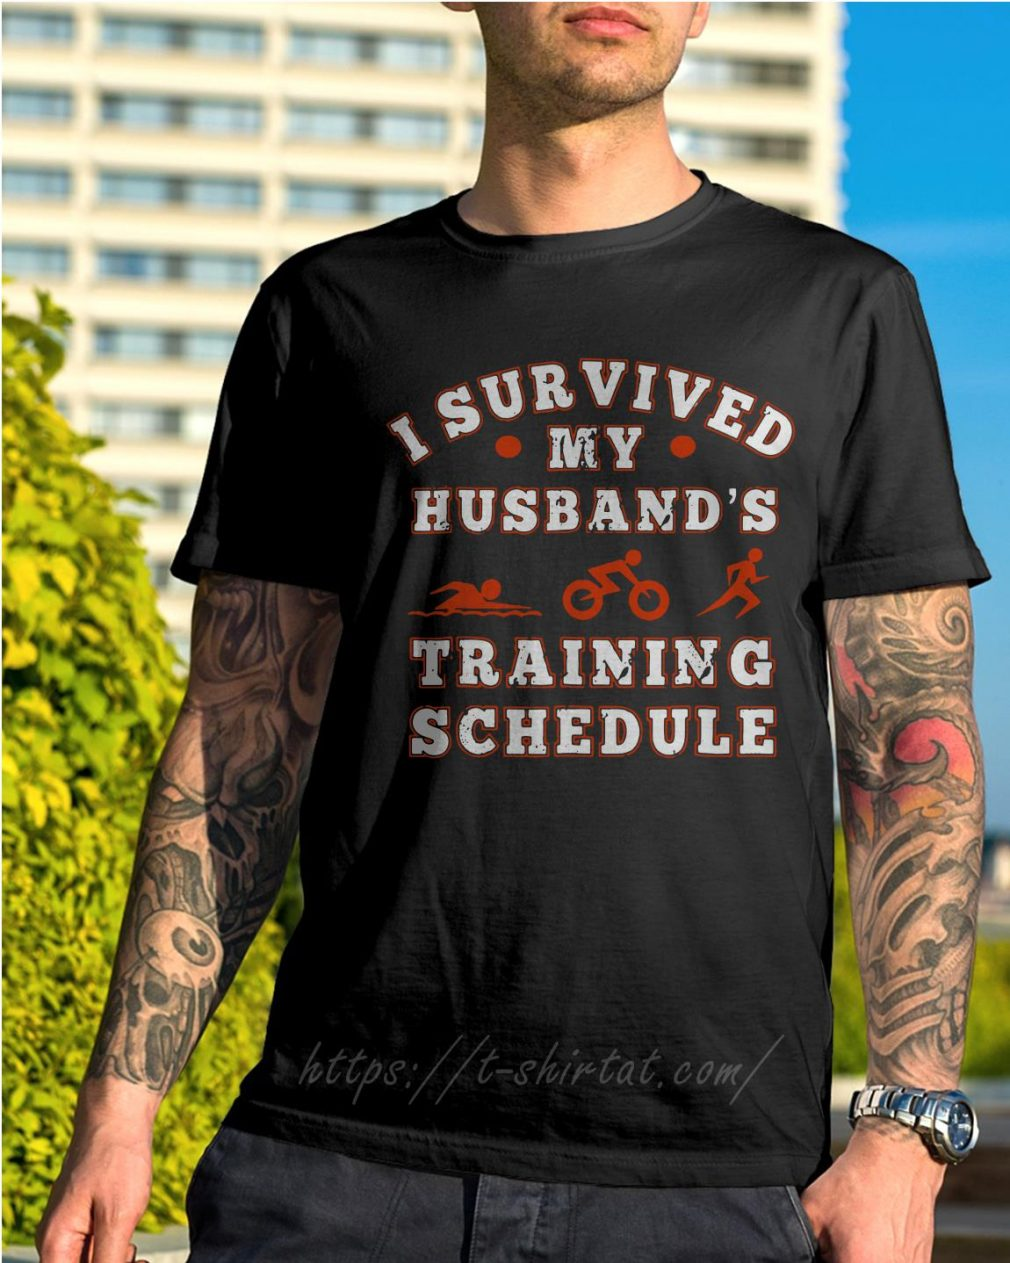 Swim bike run I survived my husband's training schedule shirt